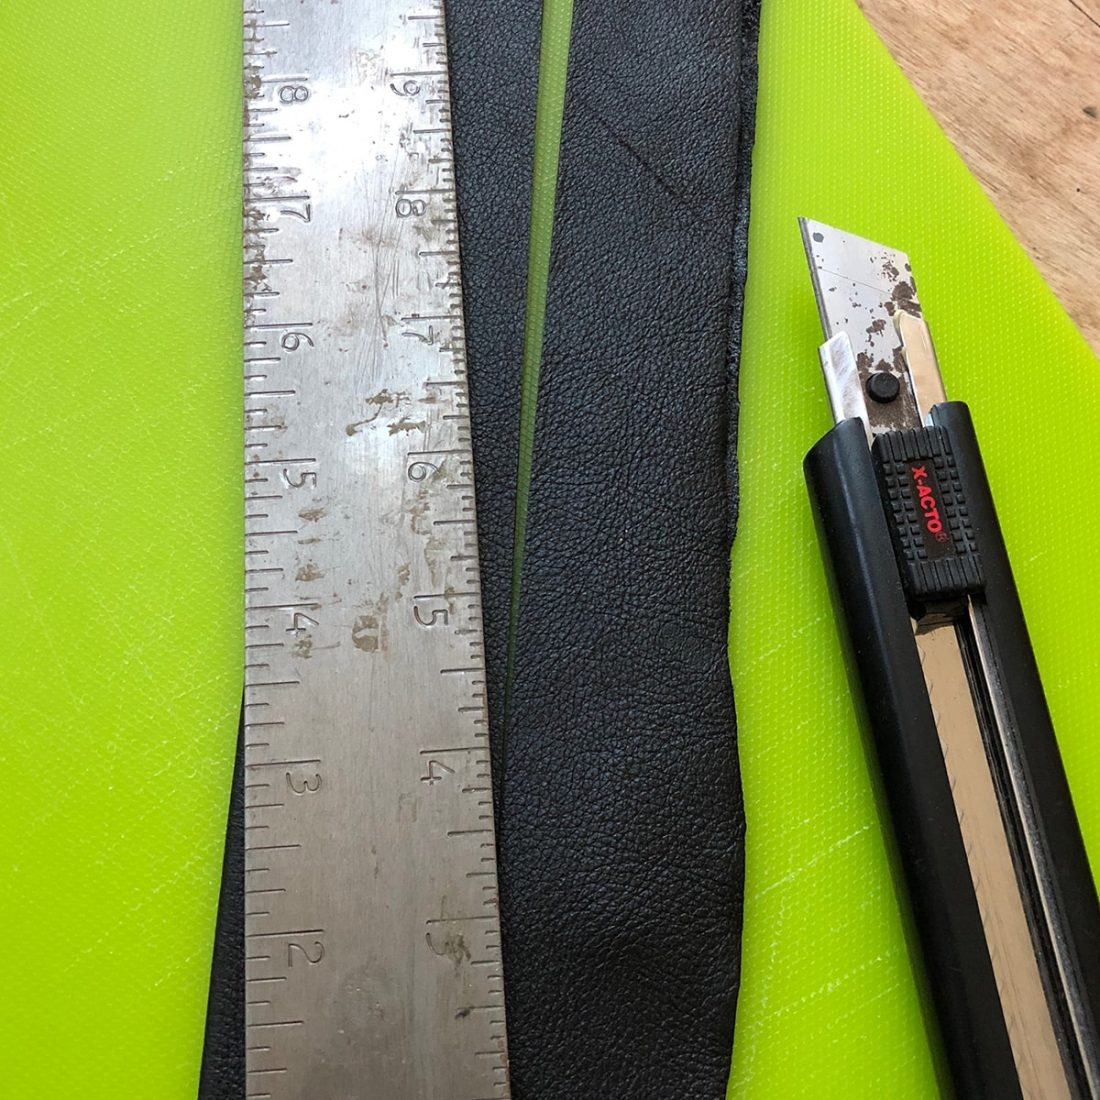 Excess material cut from the strap using a sharp blade.